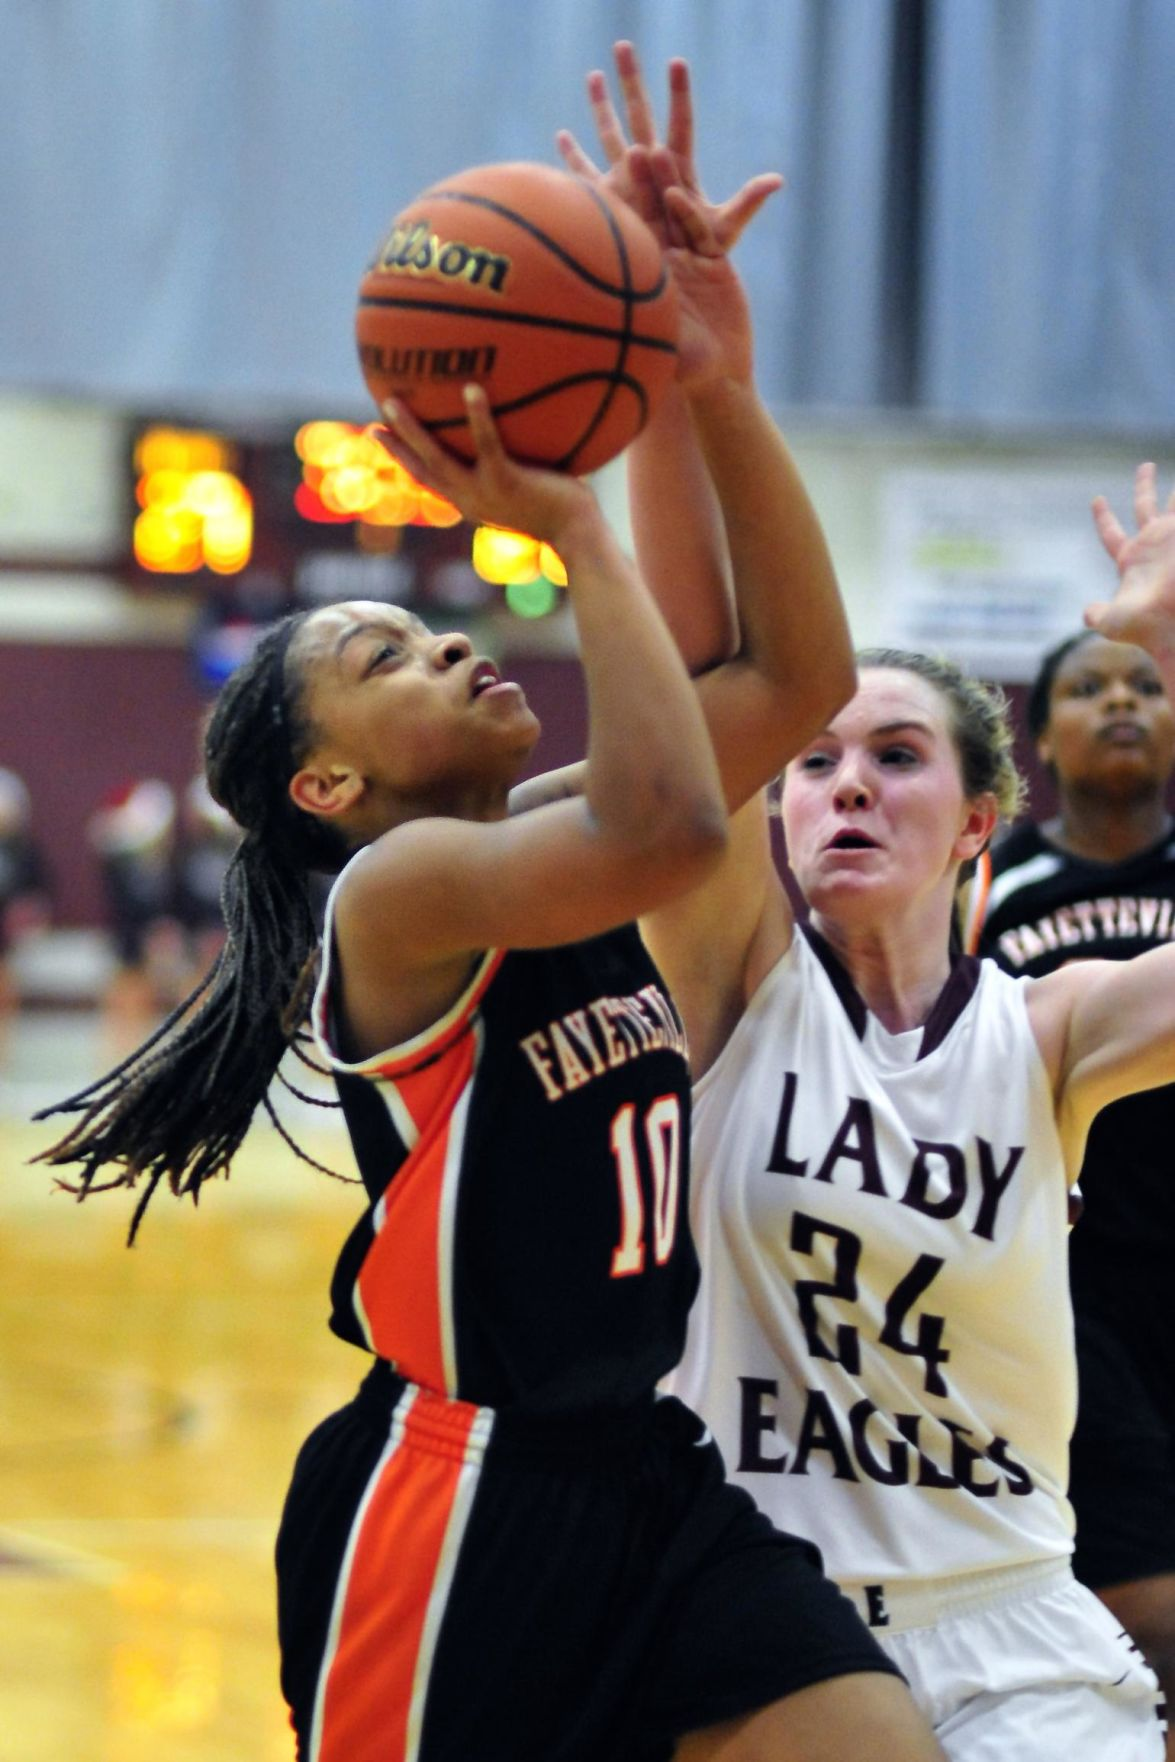 City's Lady Tigers edged by Eagleville